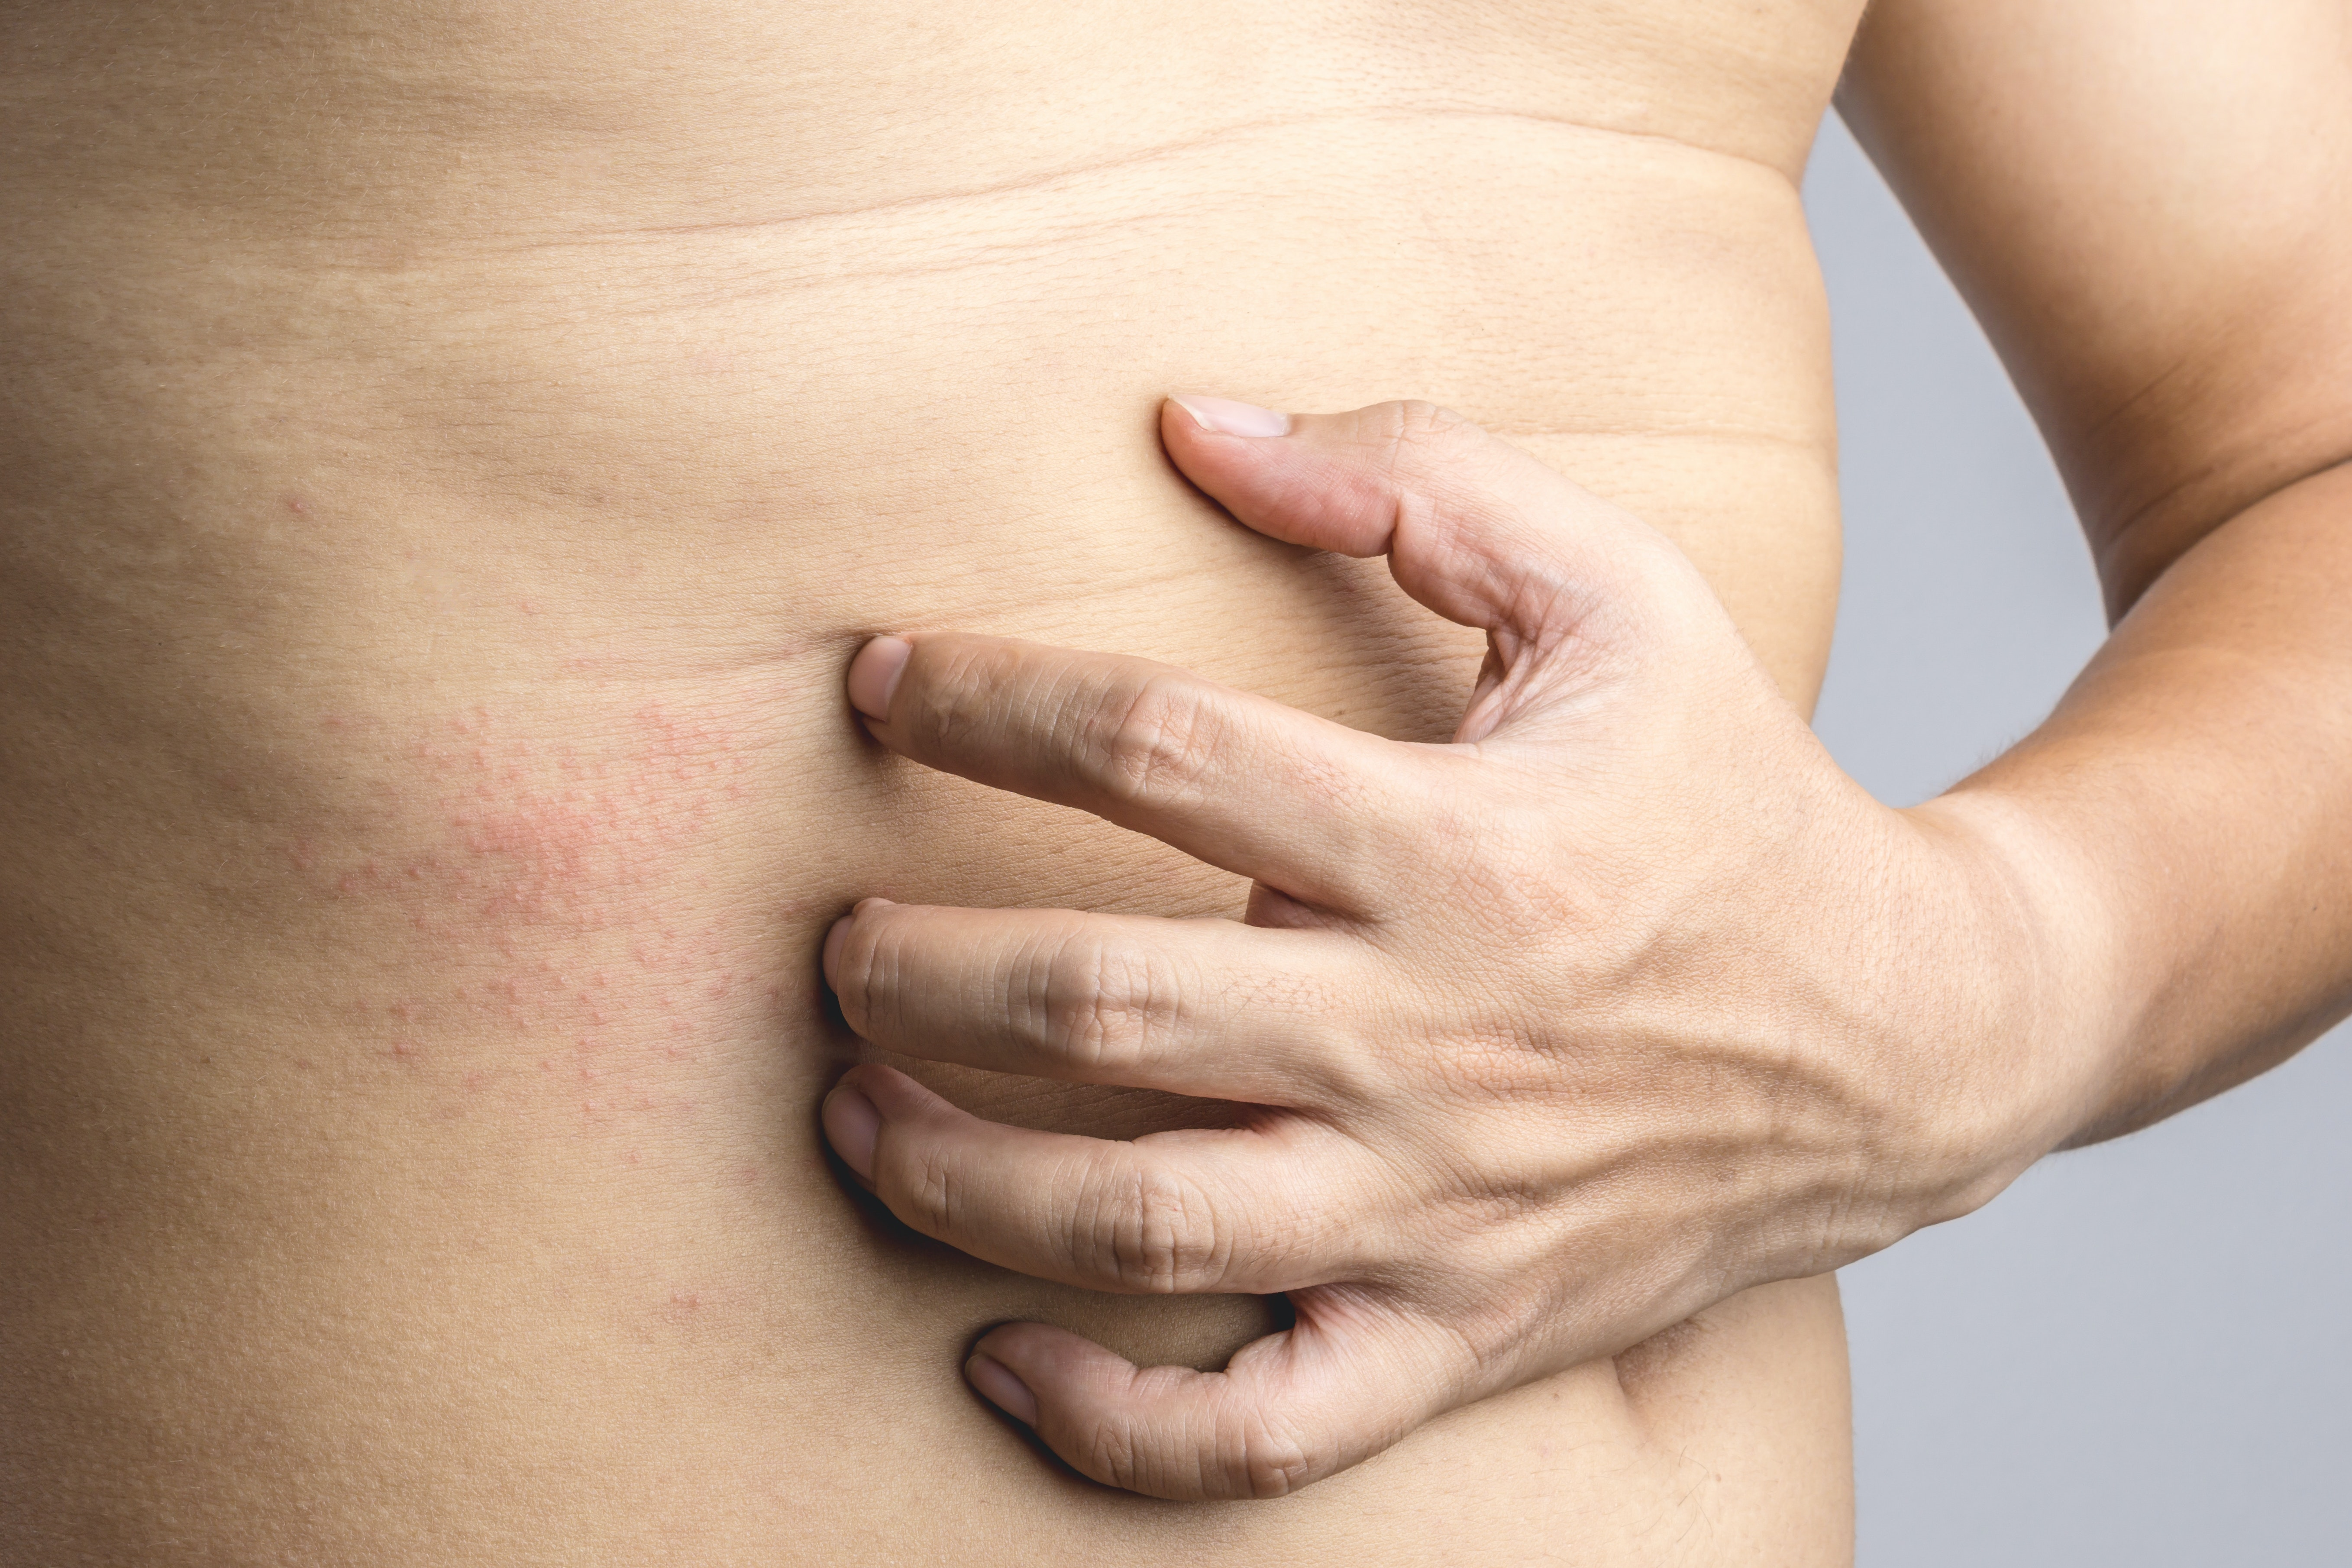 An image depicting a person suffering from abdomen itch symptoms